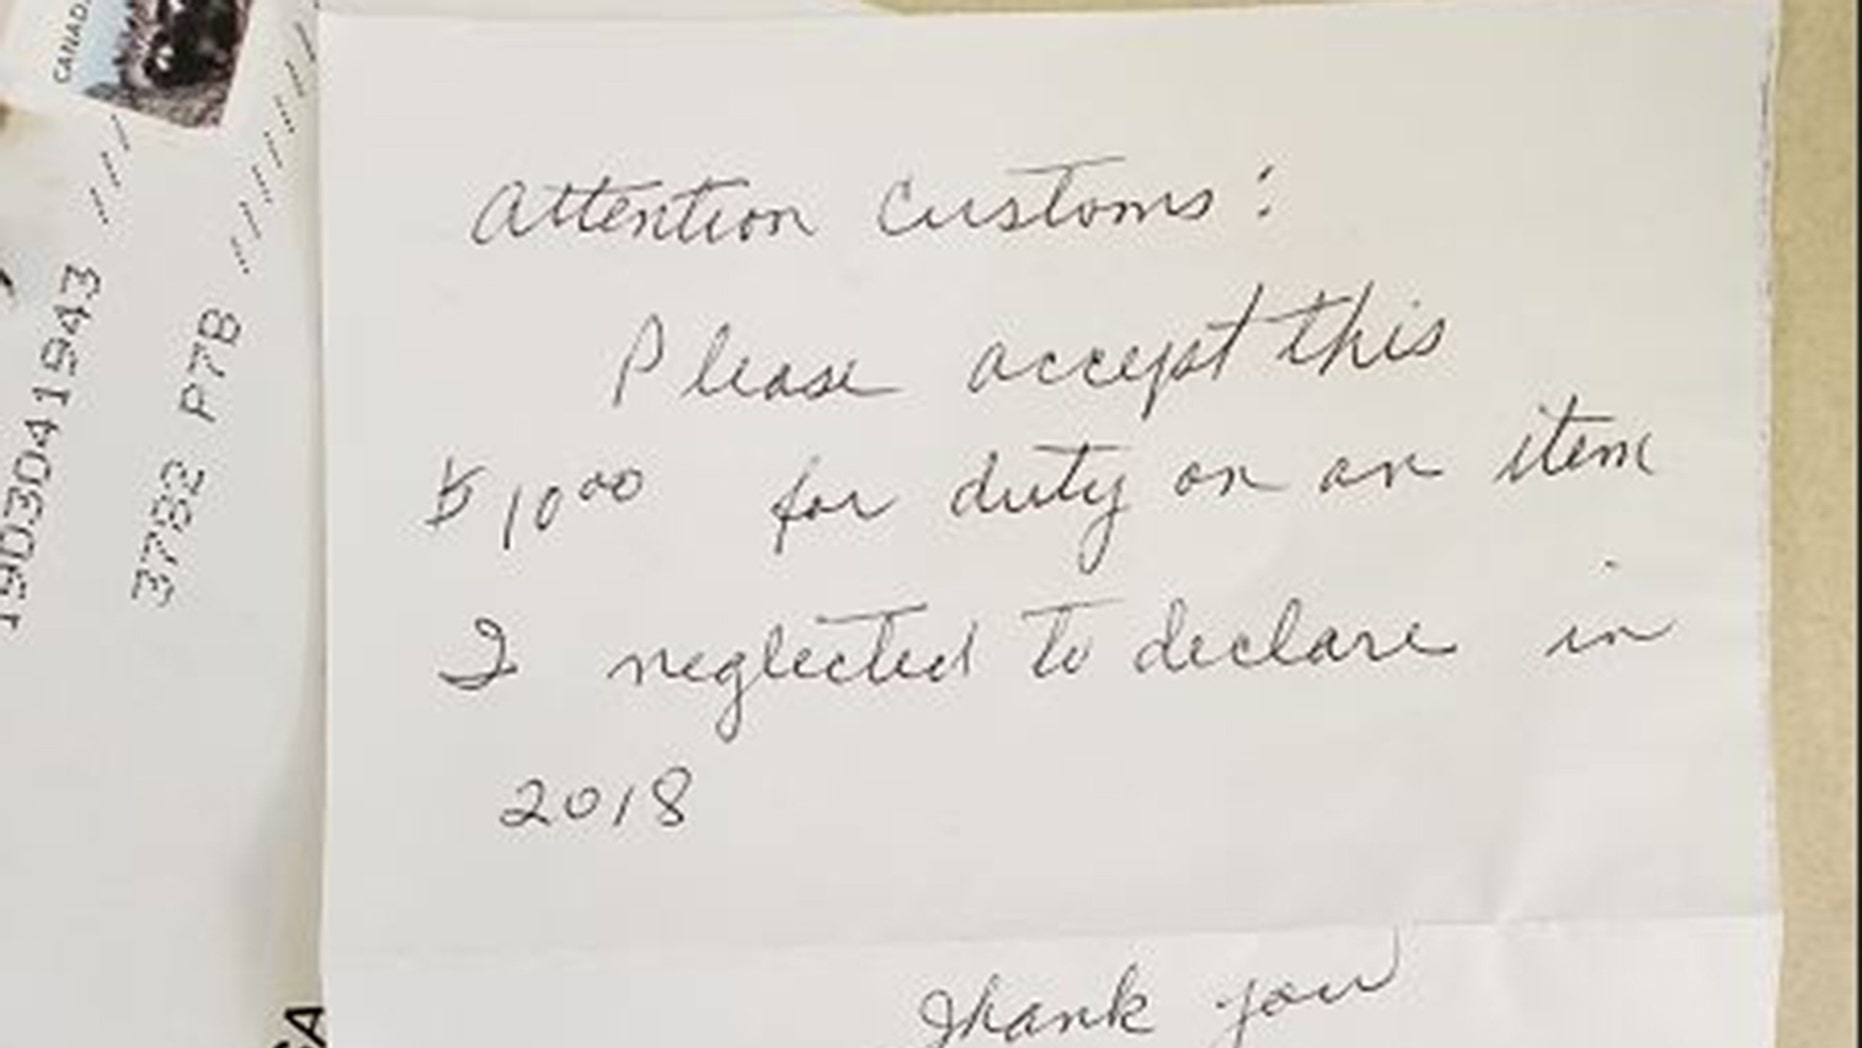 Last Tuesday, Canada Border Services Agency (CBSA) officers at the Pigeon River port of entry on the Ontario/Minnesota border received an interesting handwritten letter.<br>